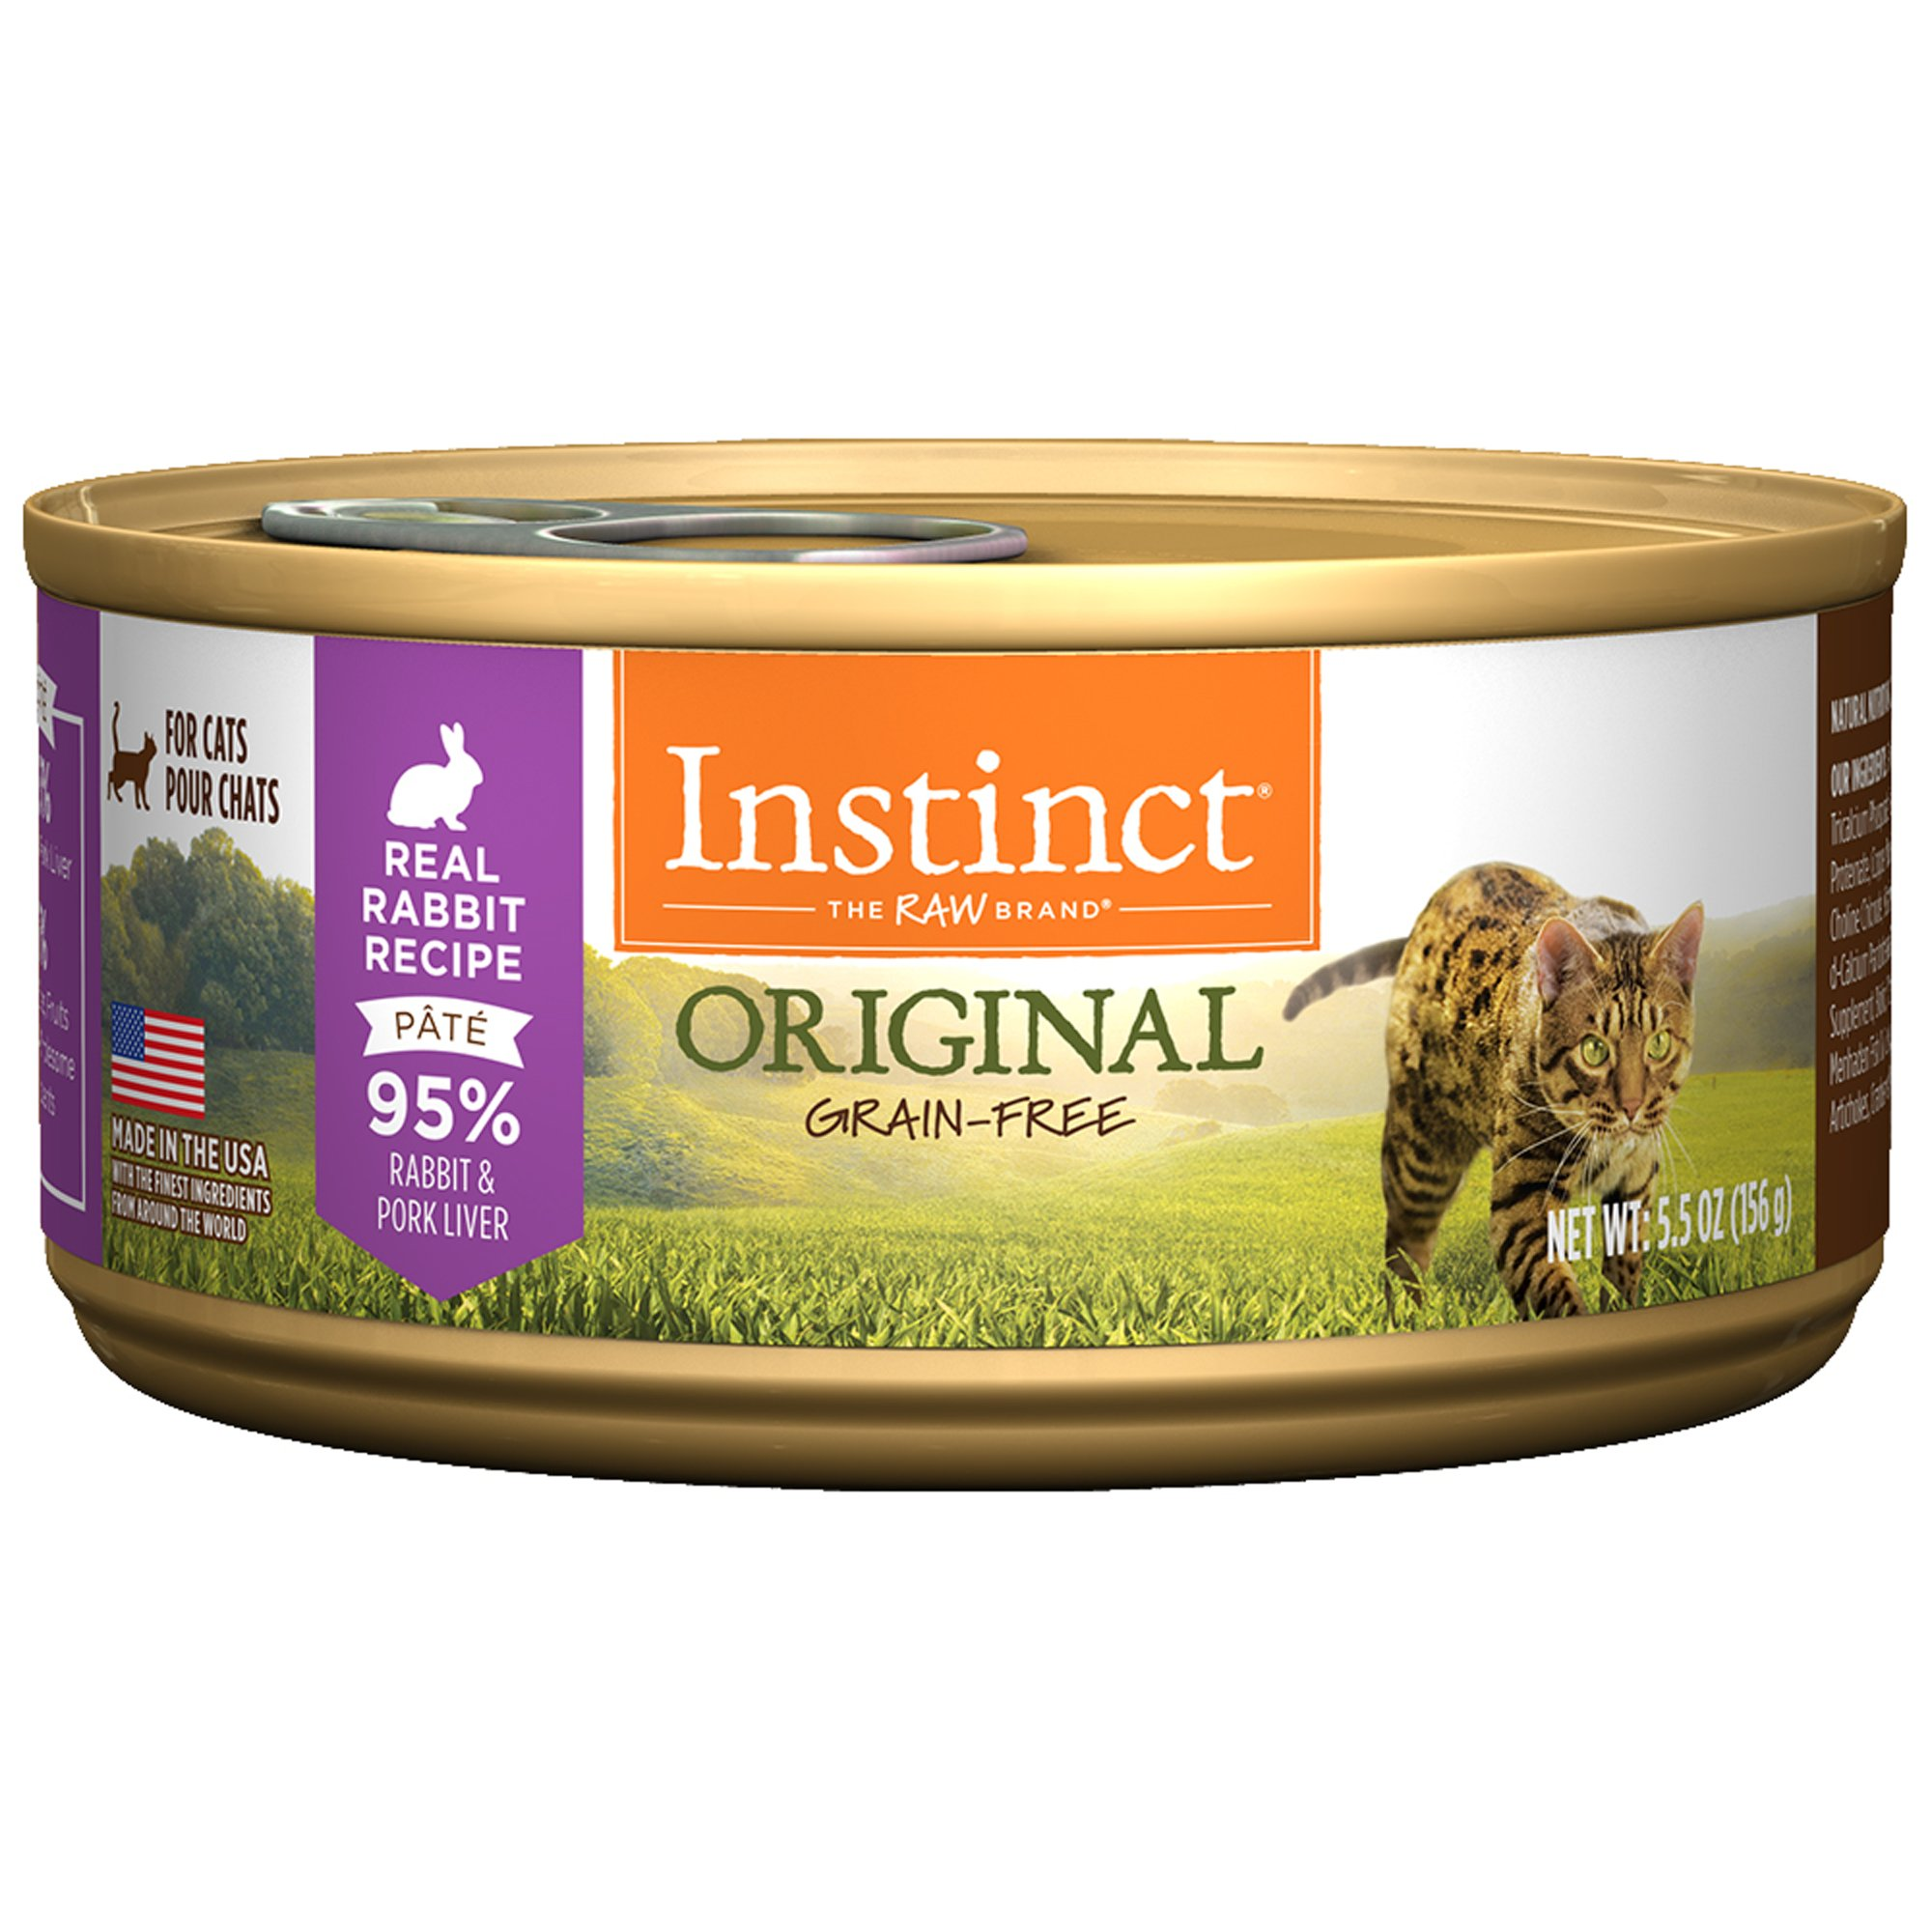 Instinct GrainFree Rabbit Canned Cat Food by Nature's